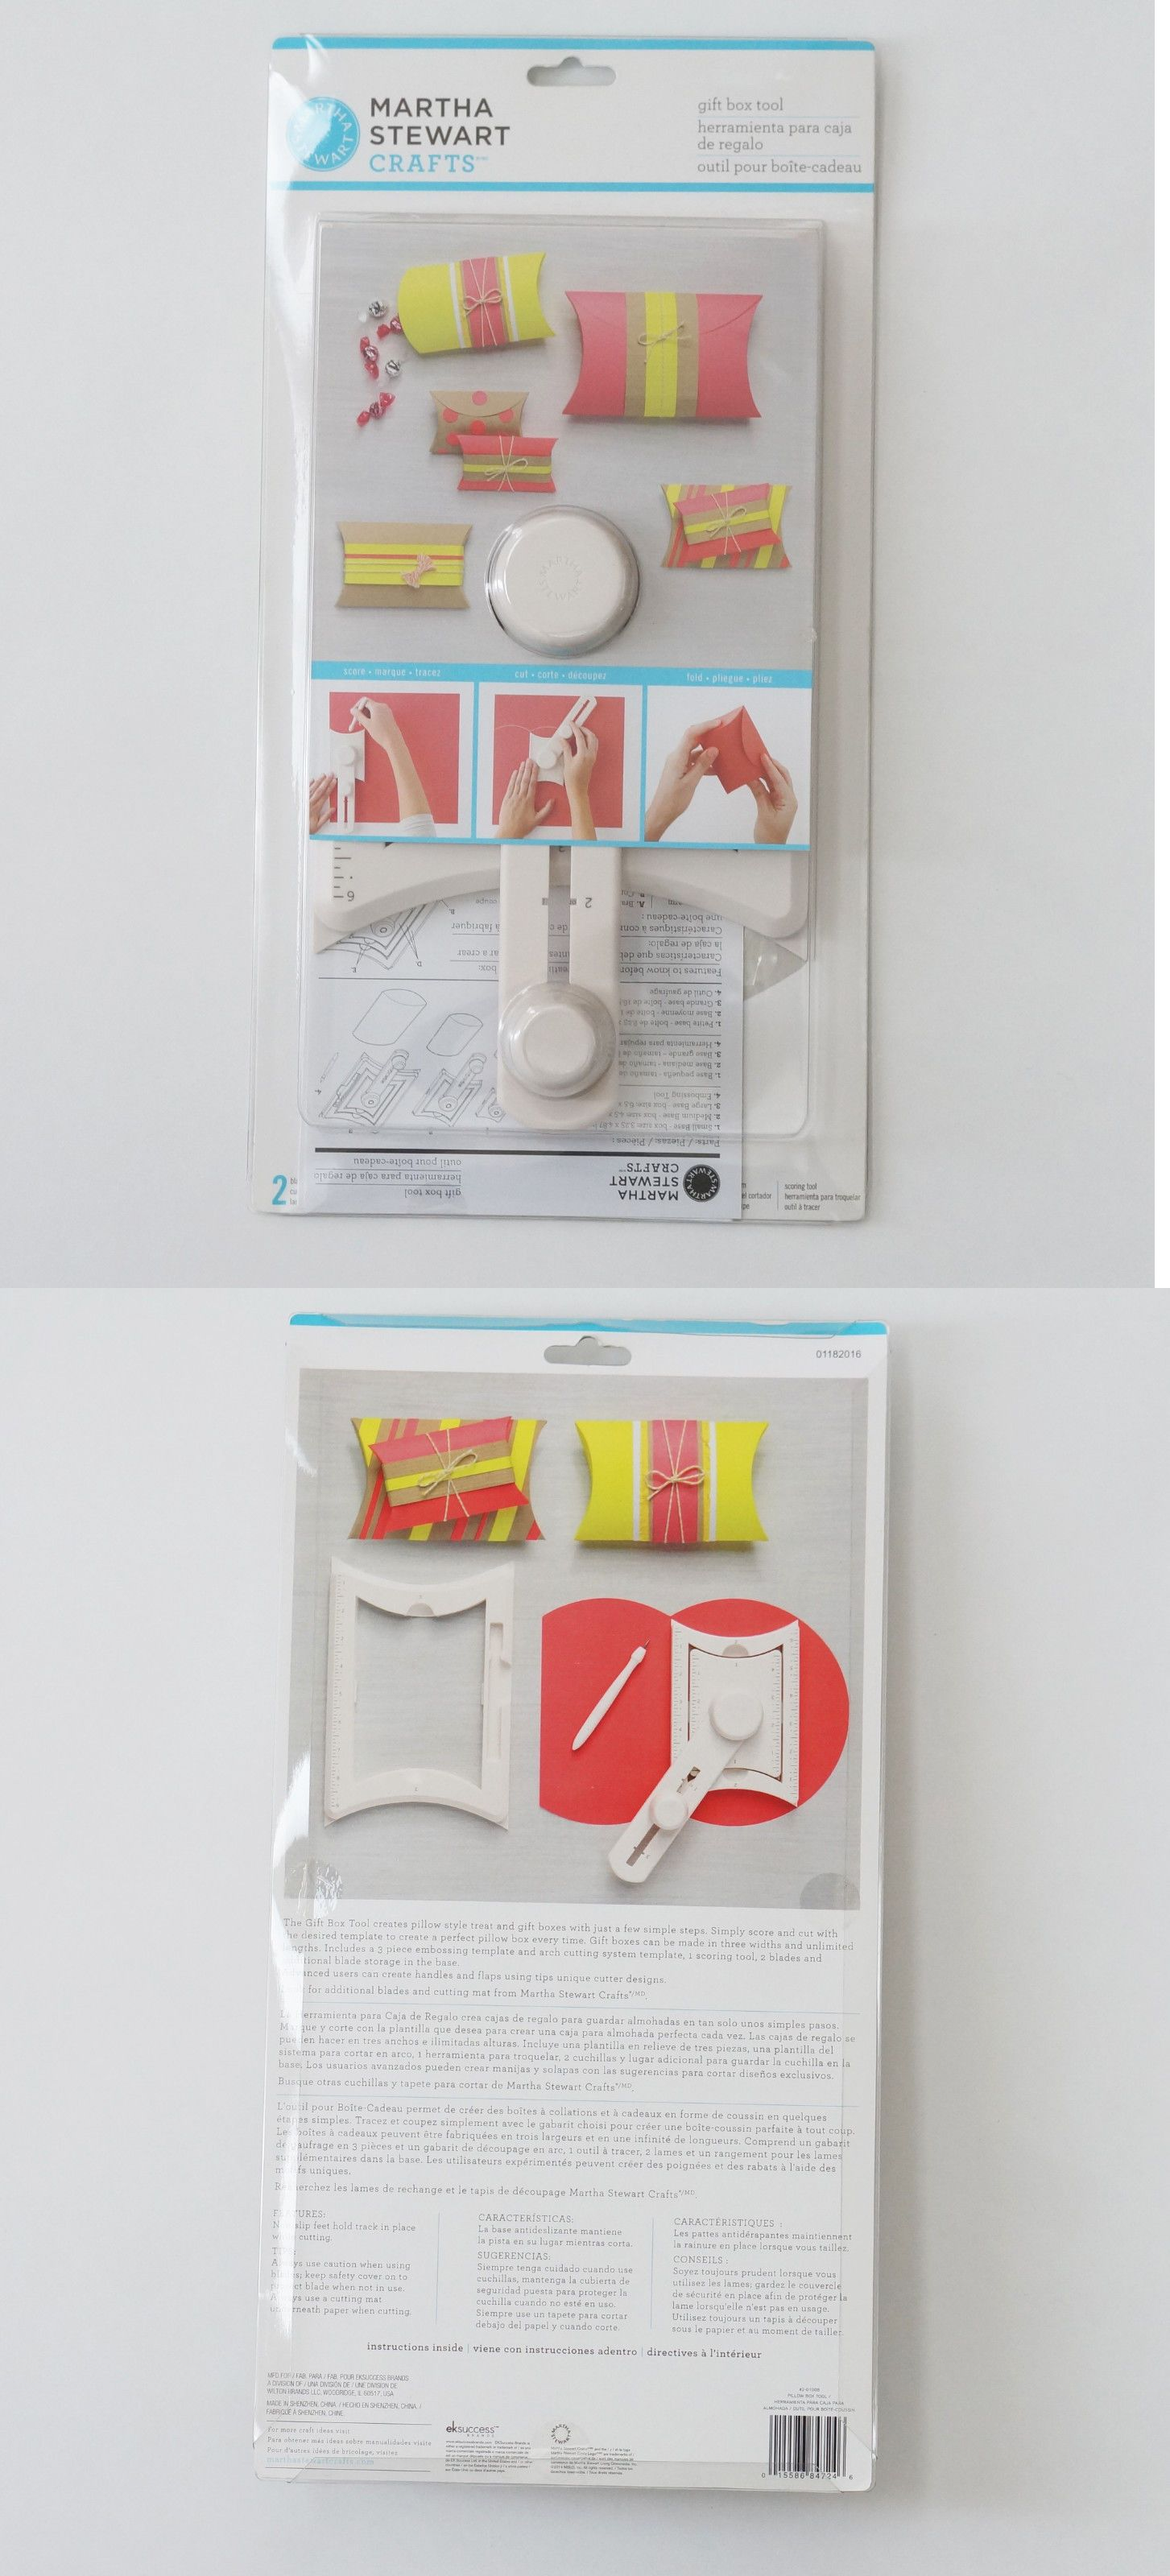 Cutting Templates 183234: Martha Stewart Gift Box Tool | New ...